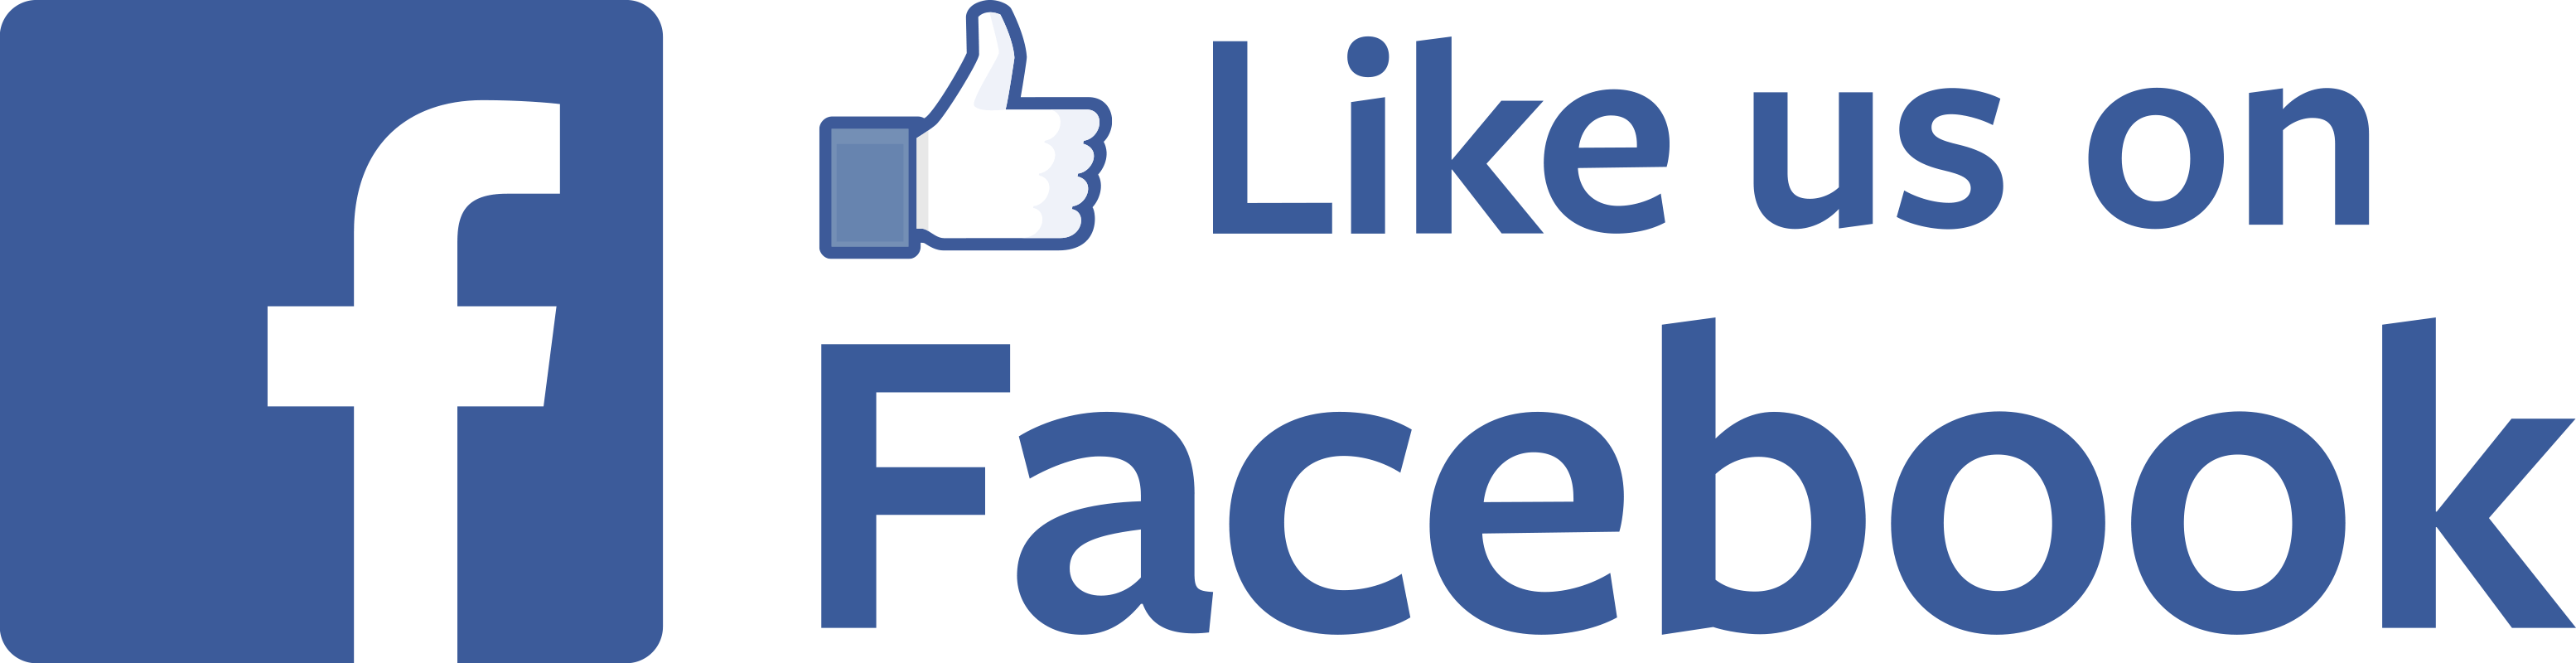 Hq facebook like png transparent facebook like png images for Like us on facebook sticker template